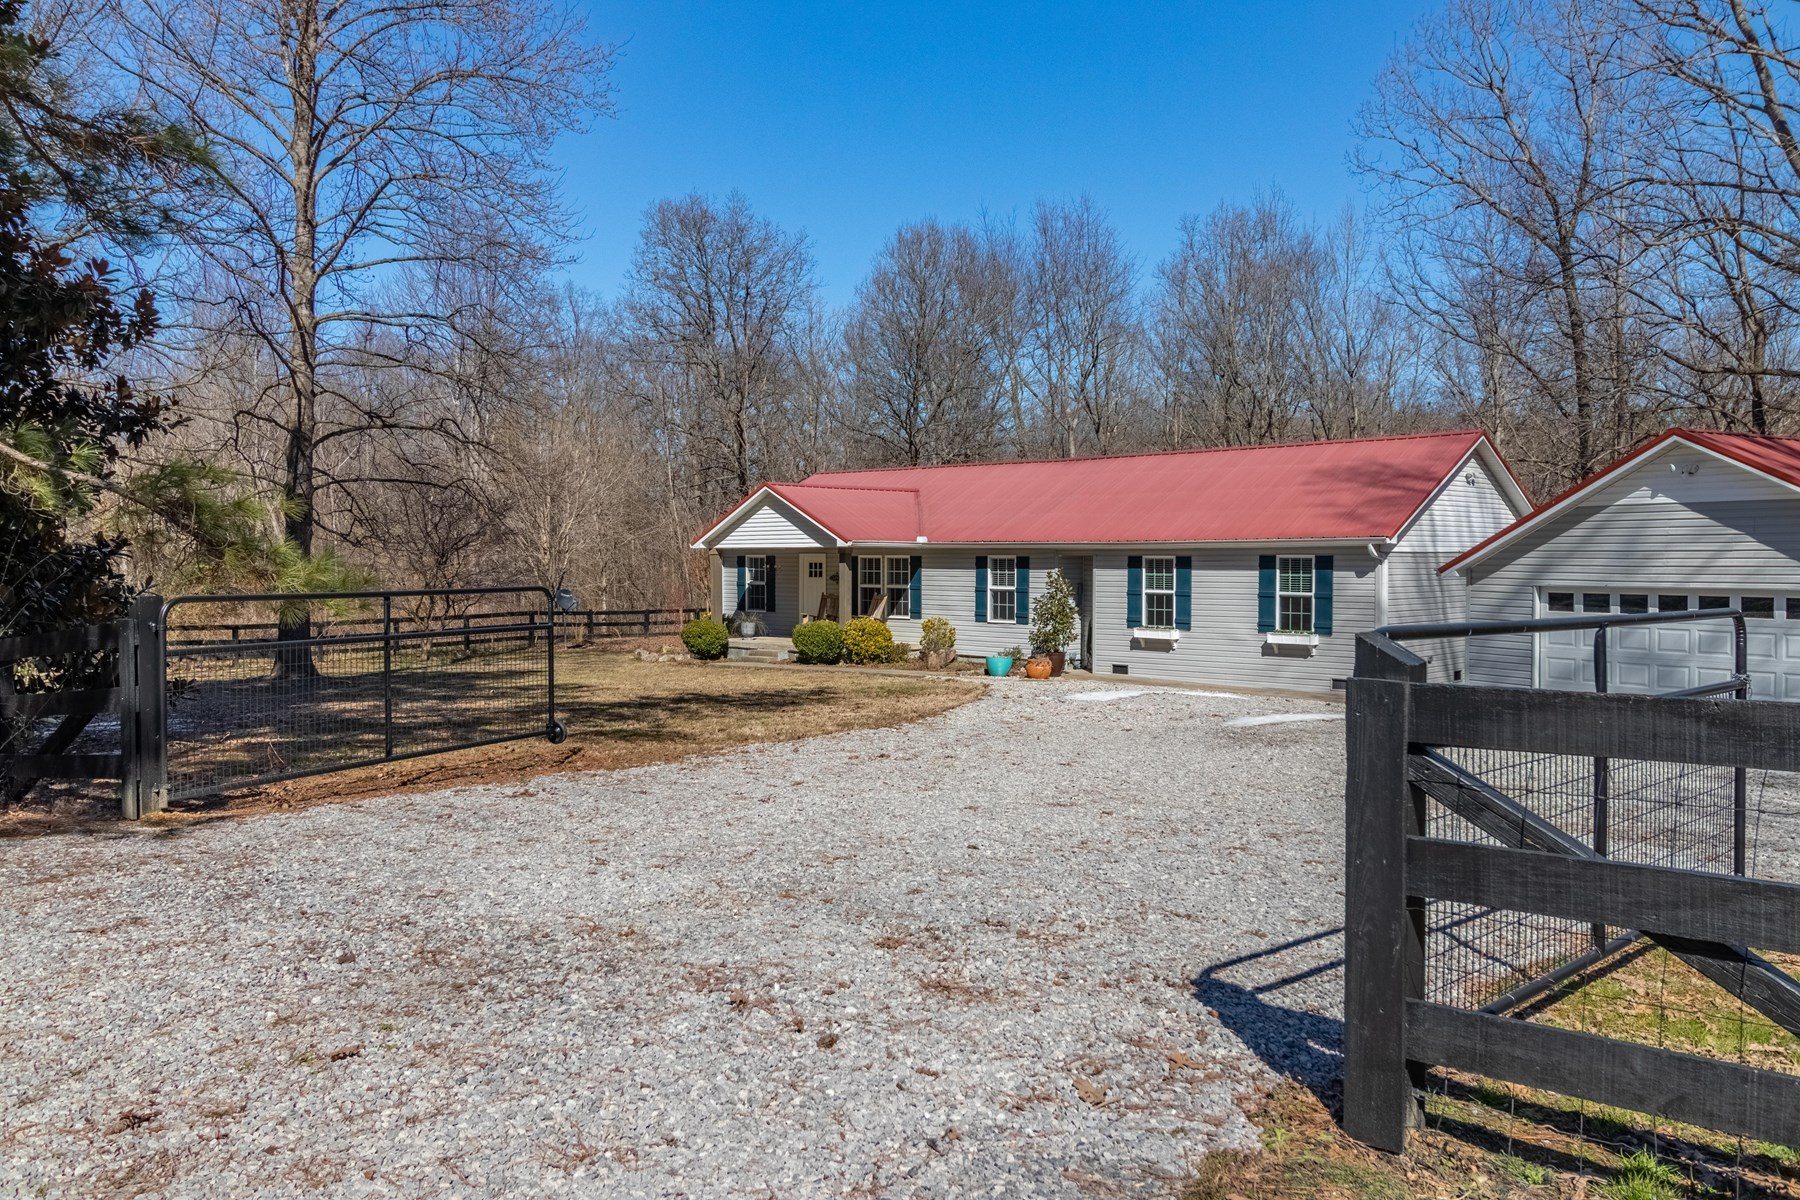 Country Home For Sale in Franklin Tennessee